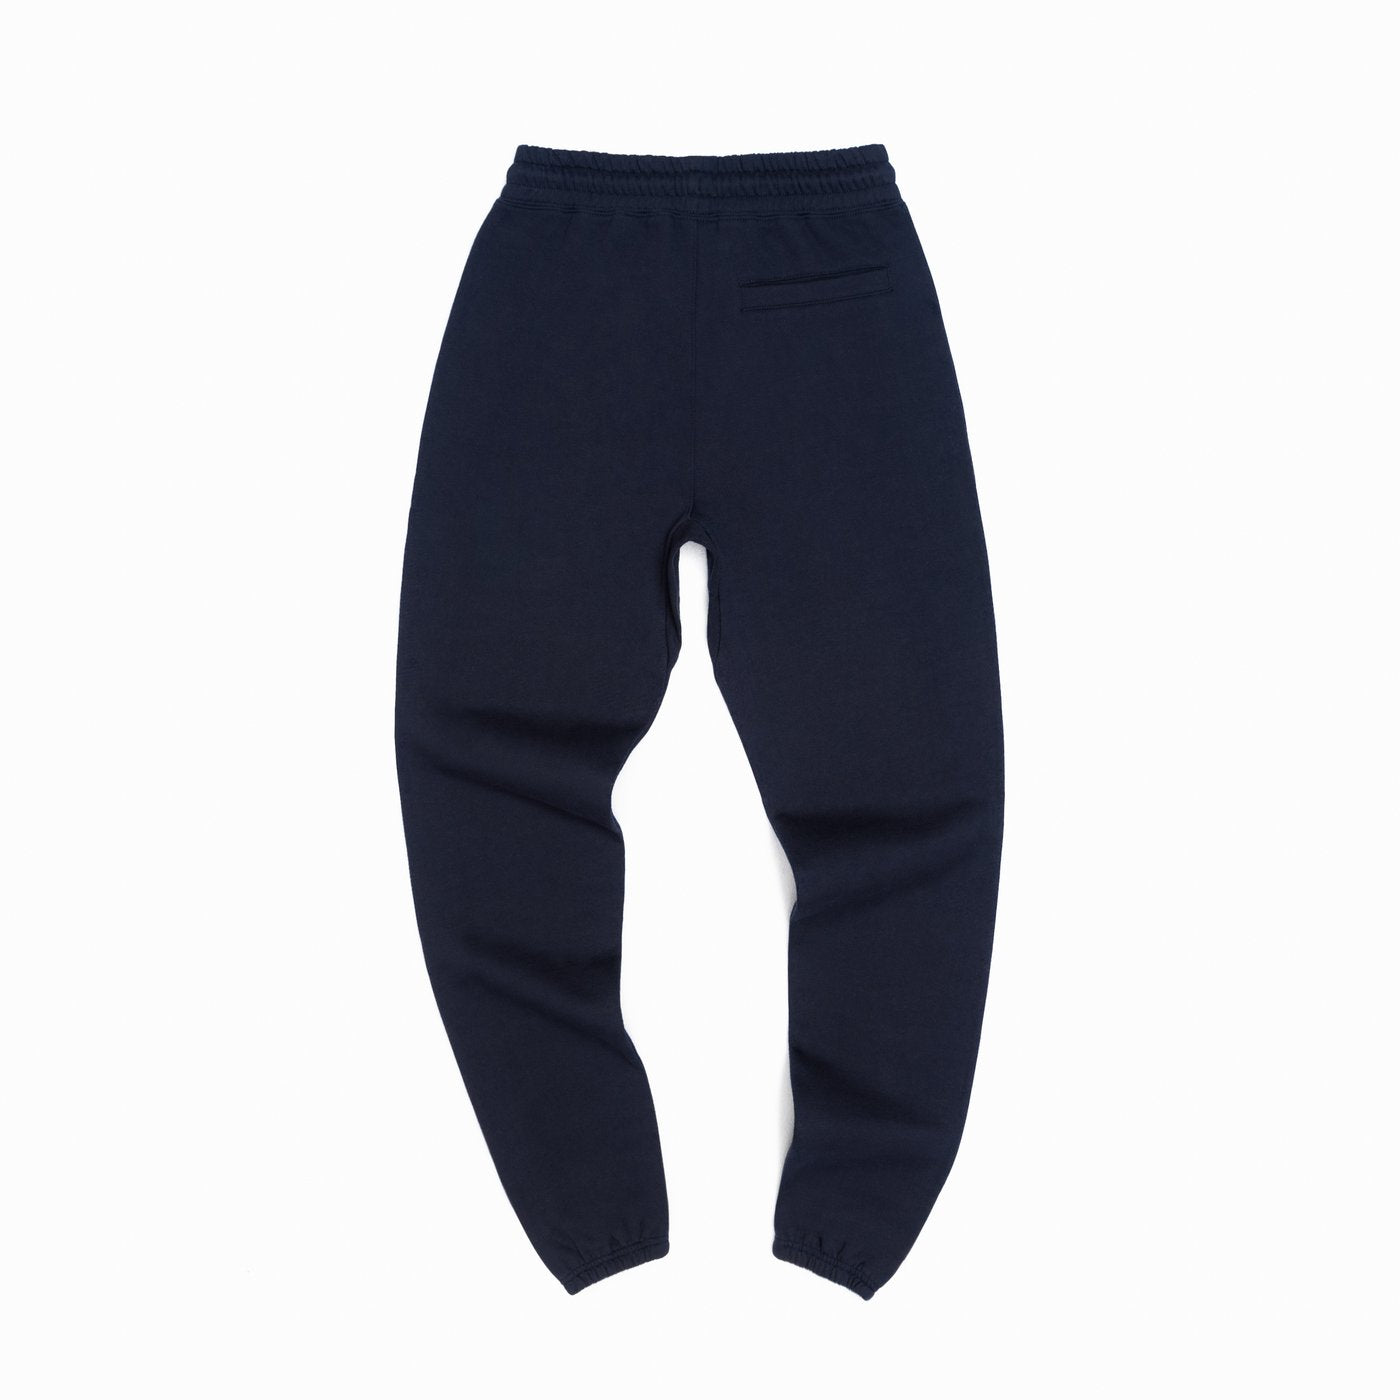 Navy Organic Cotton Sweatpants